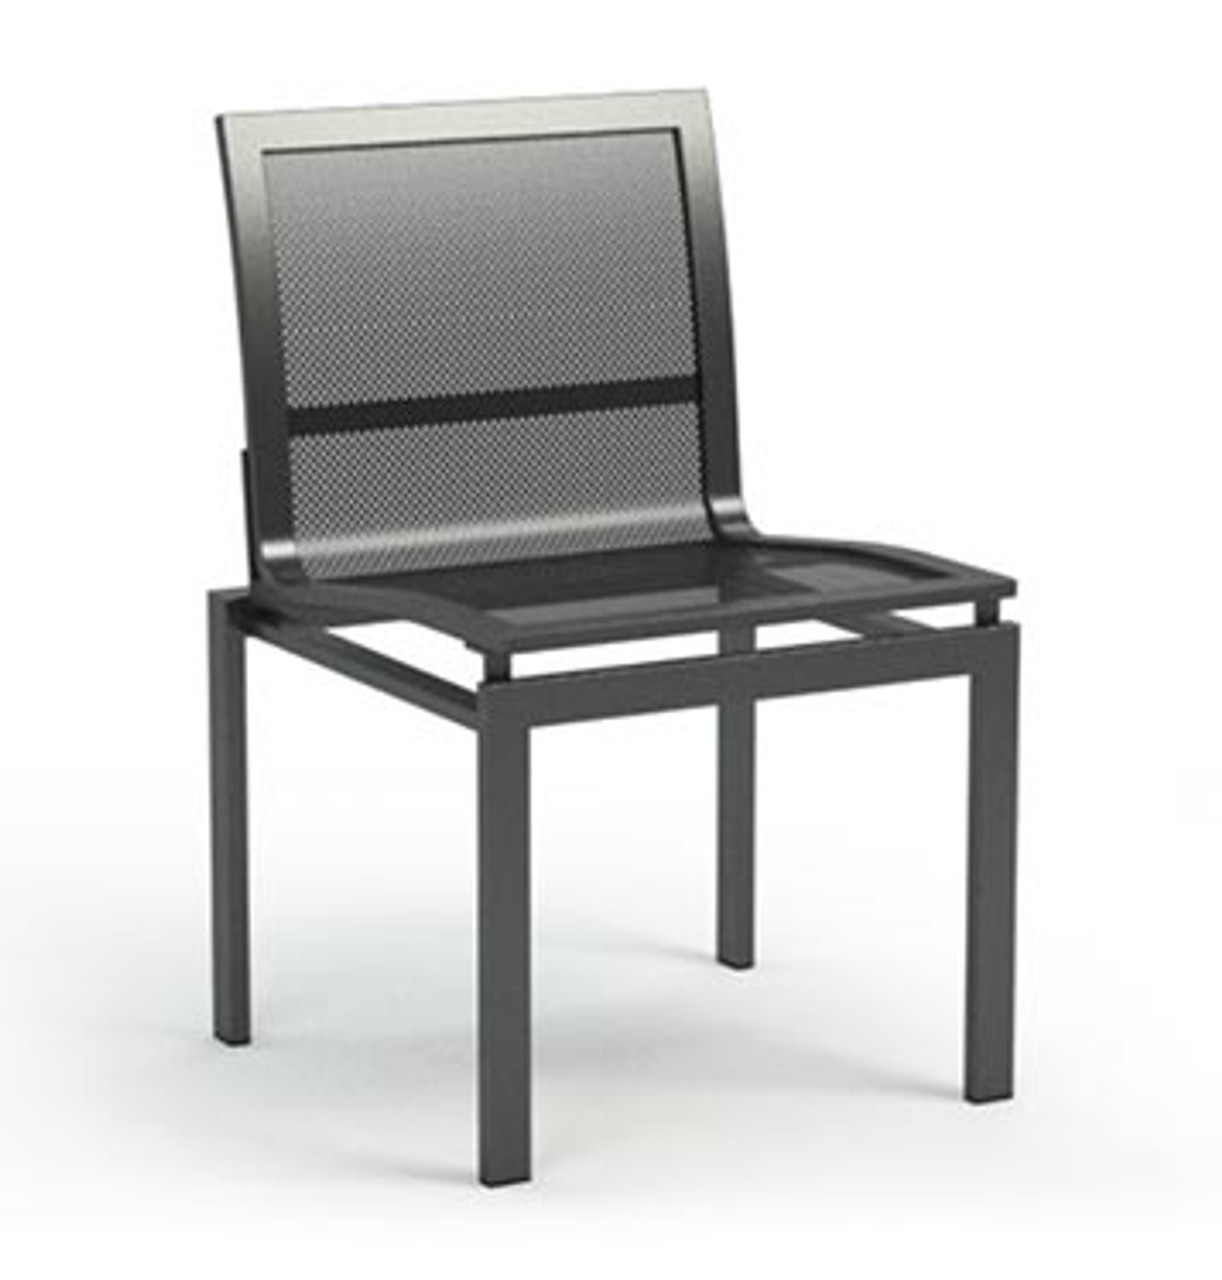 Swell Homecrest Allure Mesh Armless Cafe Chair Stack Able Interior Design Ideas Tzicisoteloinfo